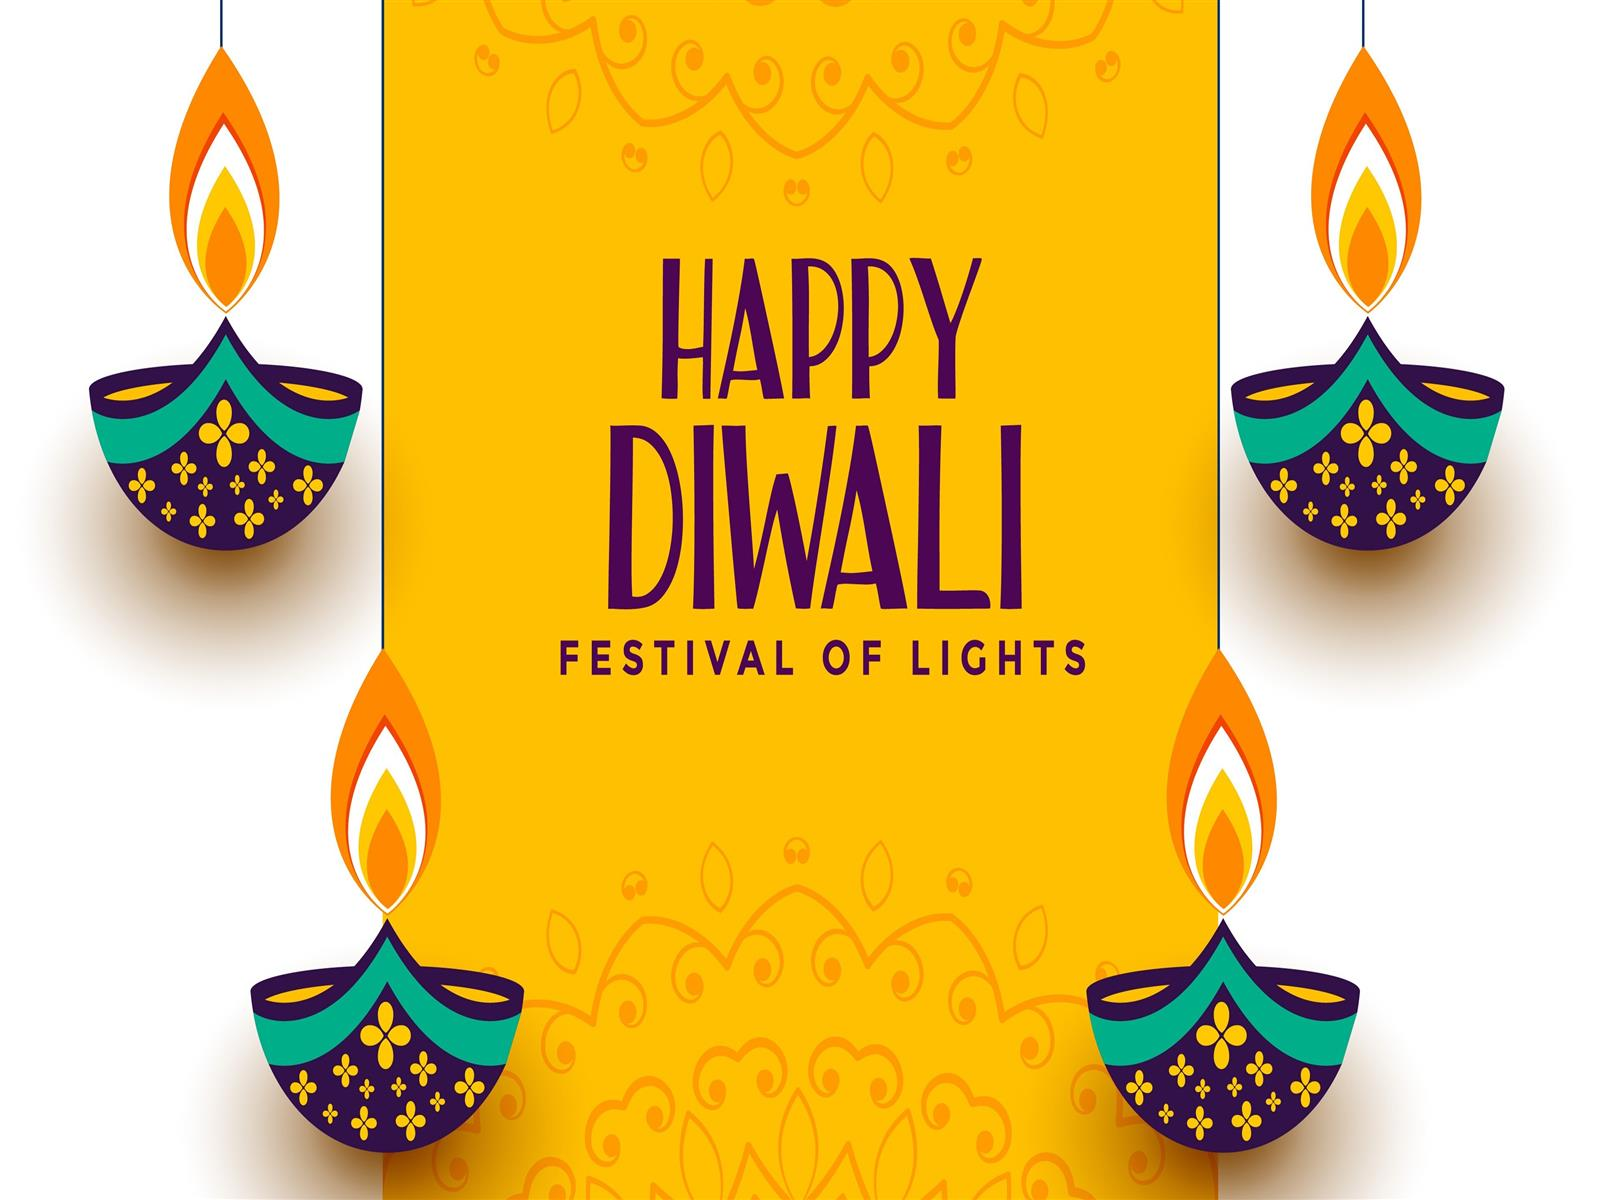 1600x1200 Festival of Lights Diwali 2019 Yellow Background 4K Wallpaper